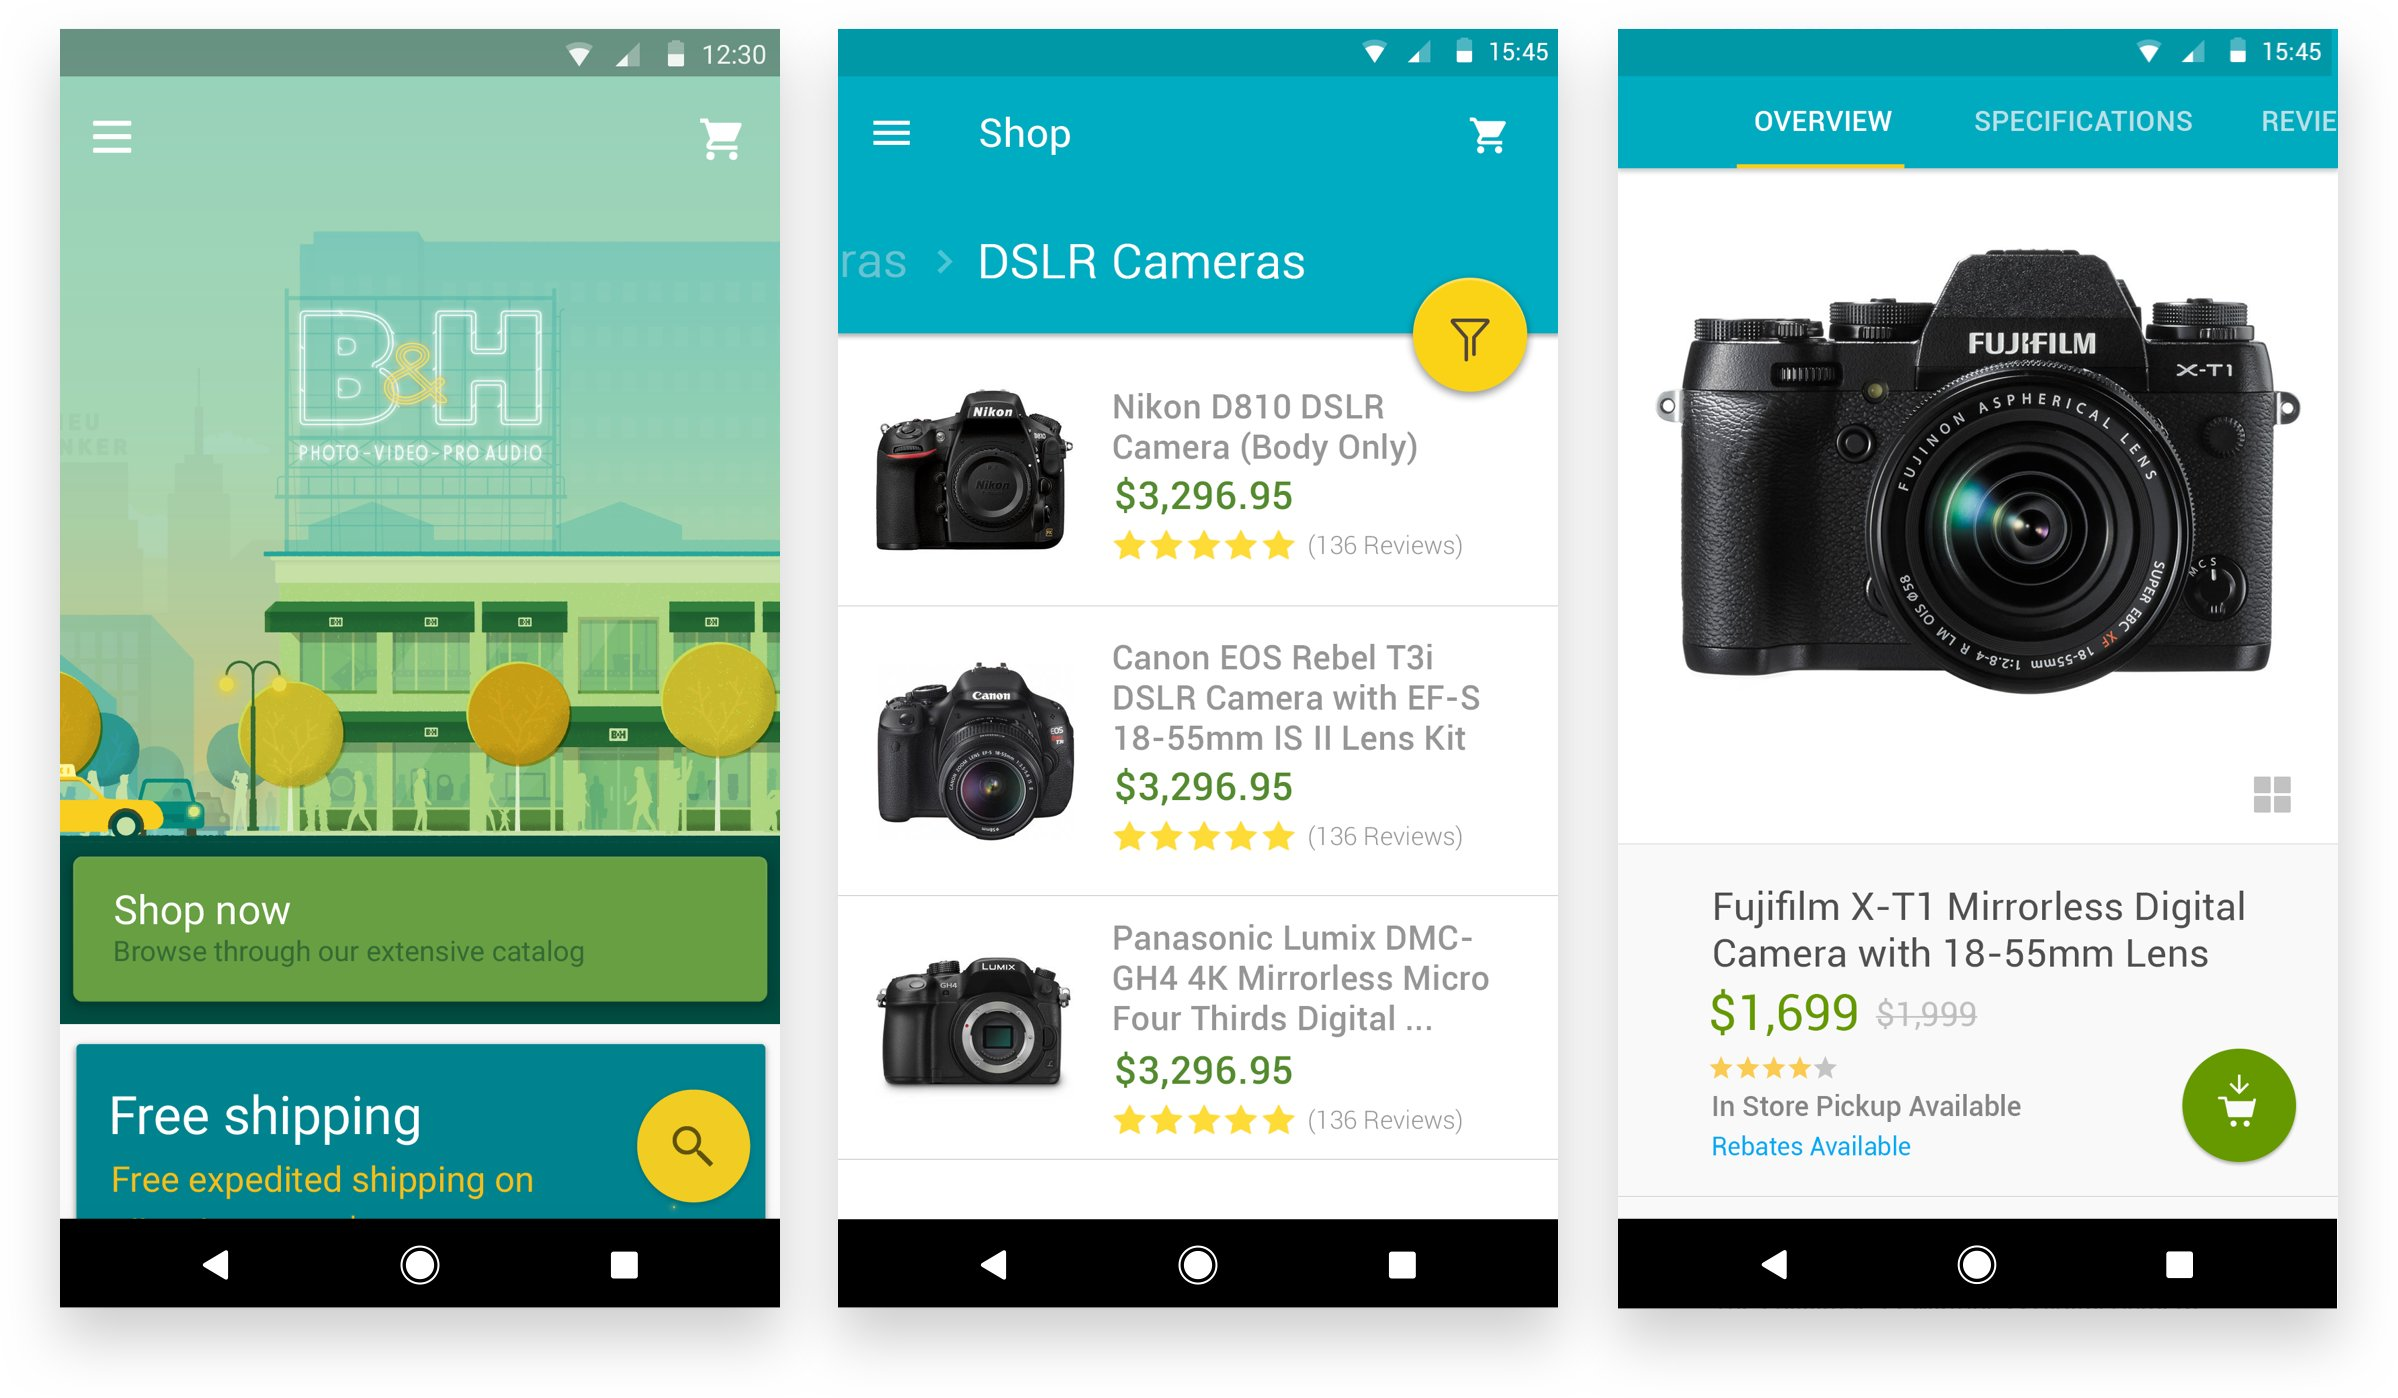 576f9830488c 3 iPhone screens showing DSLR cameras. two iphone images showing item  checkout. Material Design Illustrations